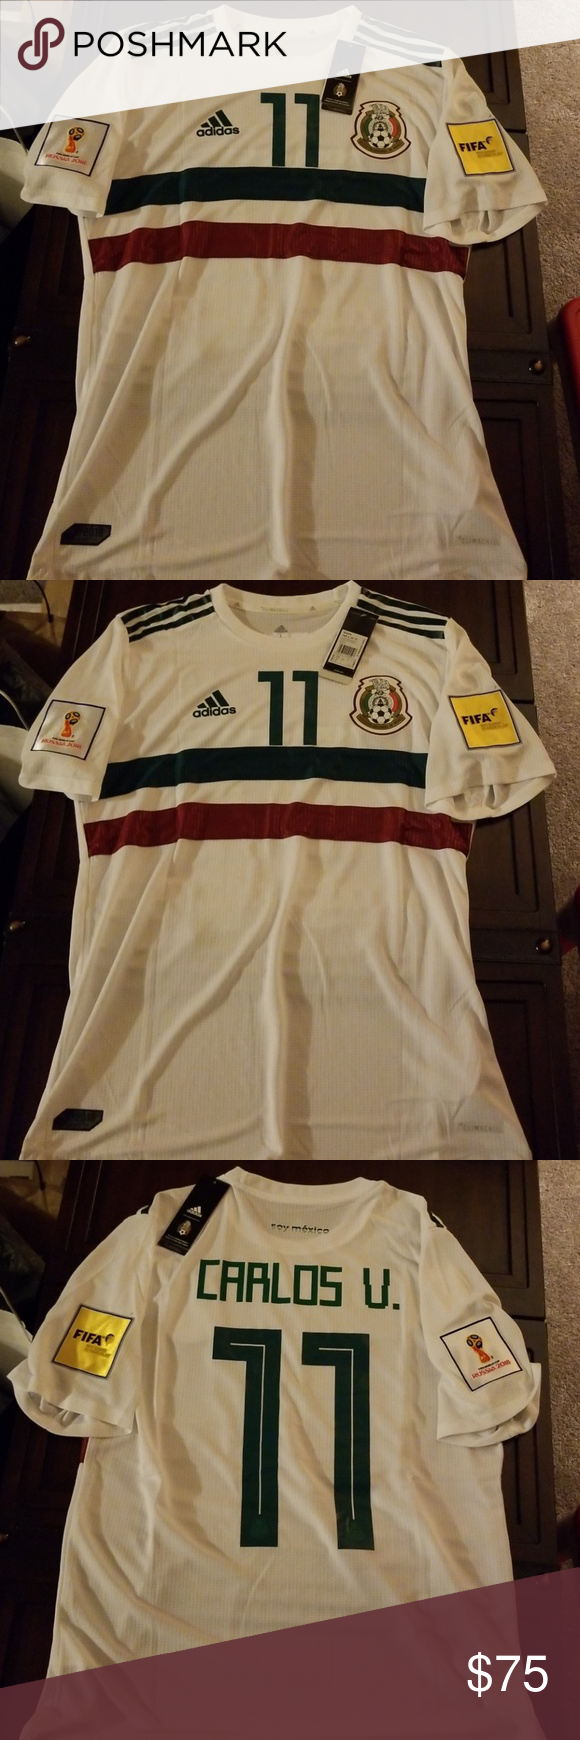 buy online 26e30 11484 Adidas men's Mexico soccer team home away Jersey Authentic ...